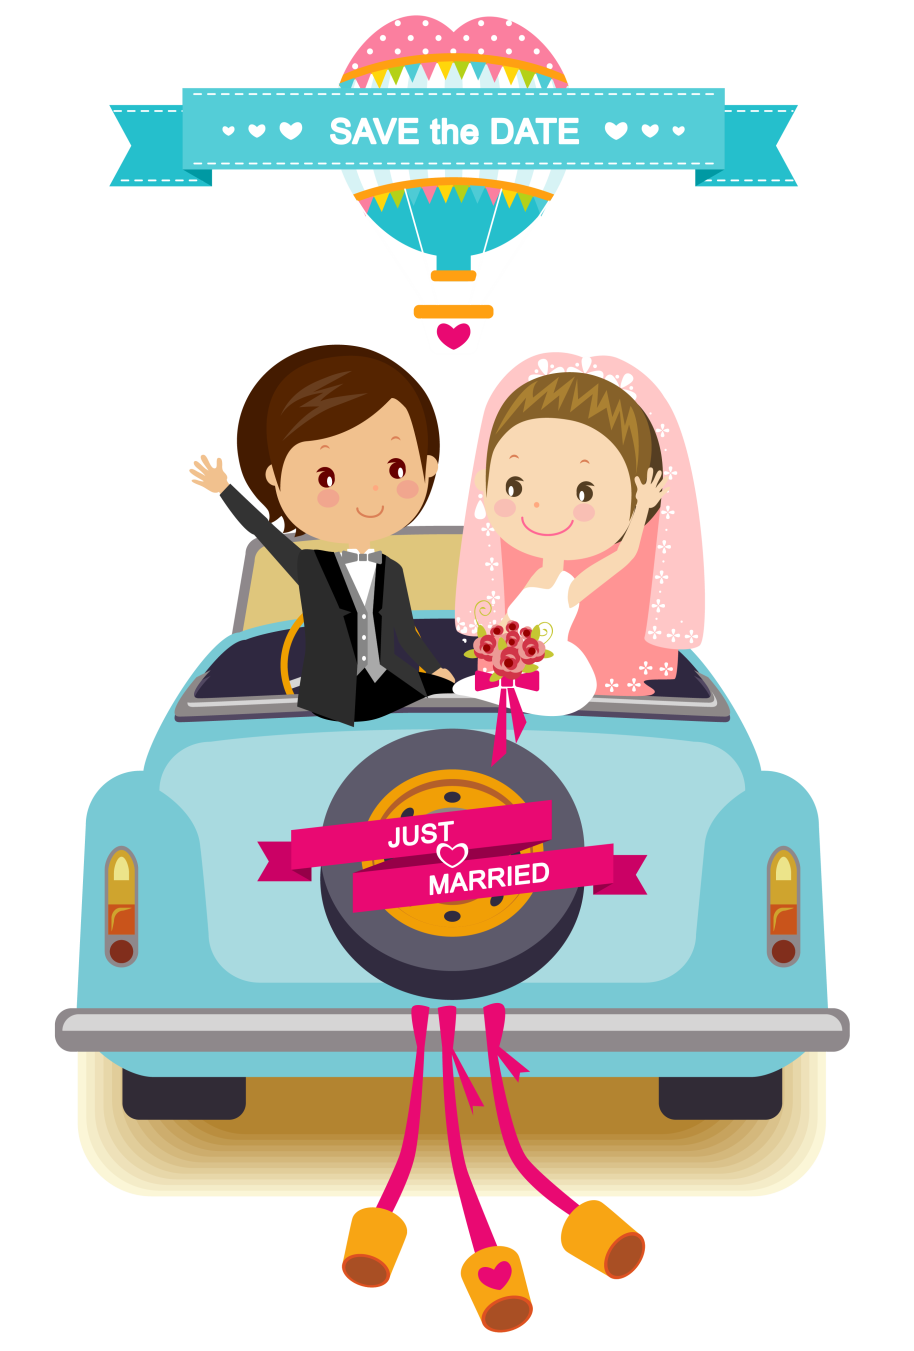 Ganesh vector wedding card. Online invitation video for